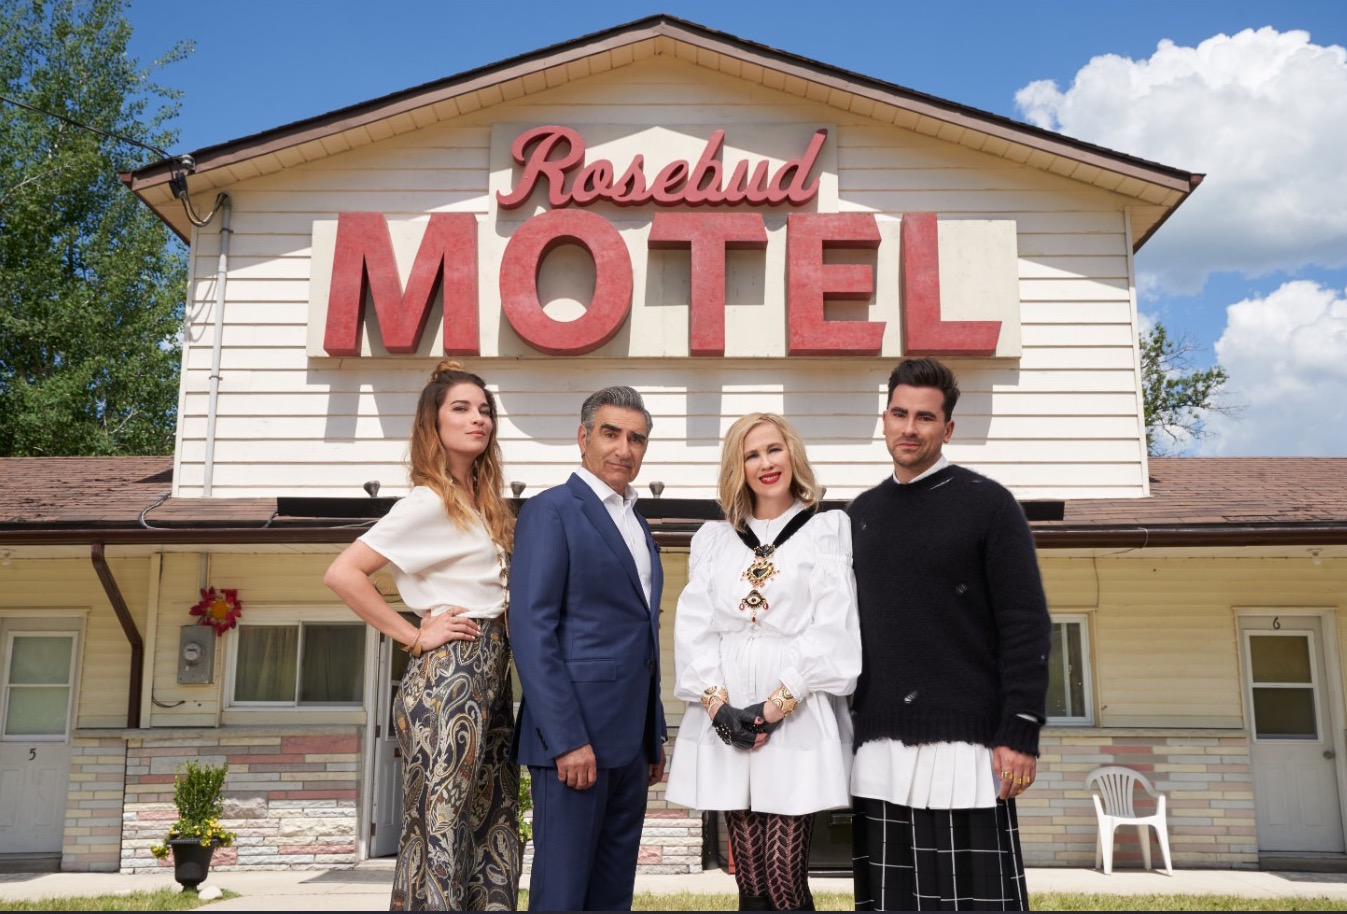 Season 6 Schitt's Creek